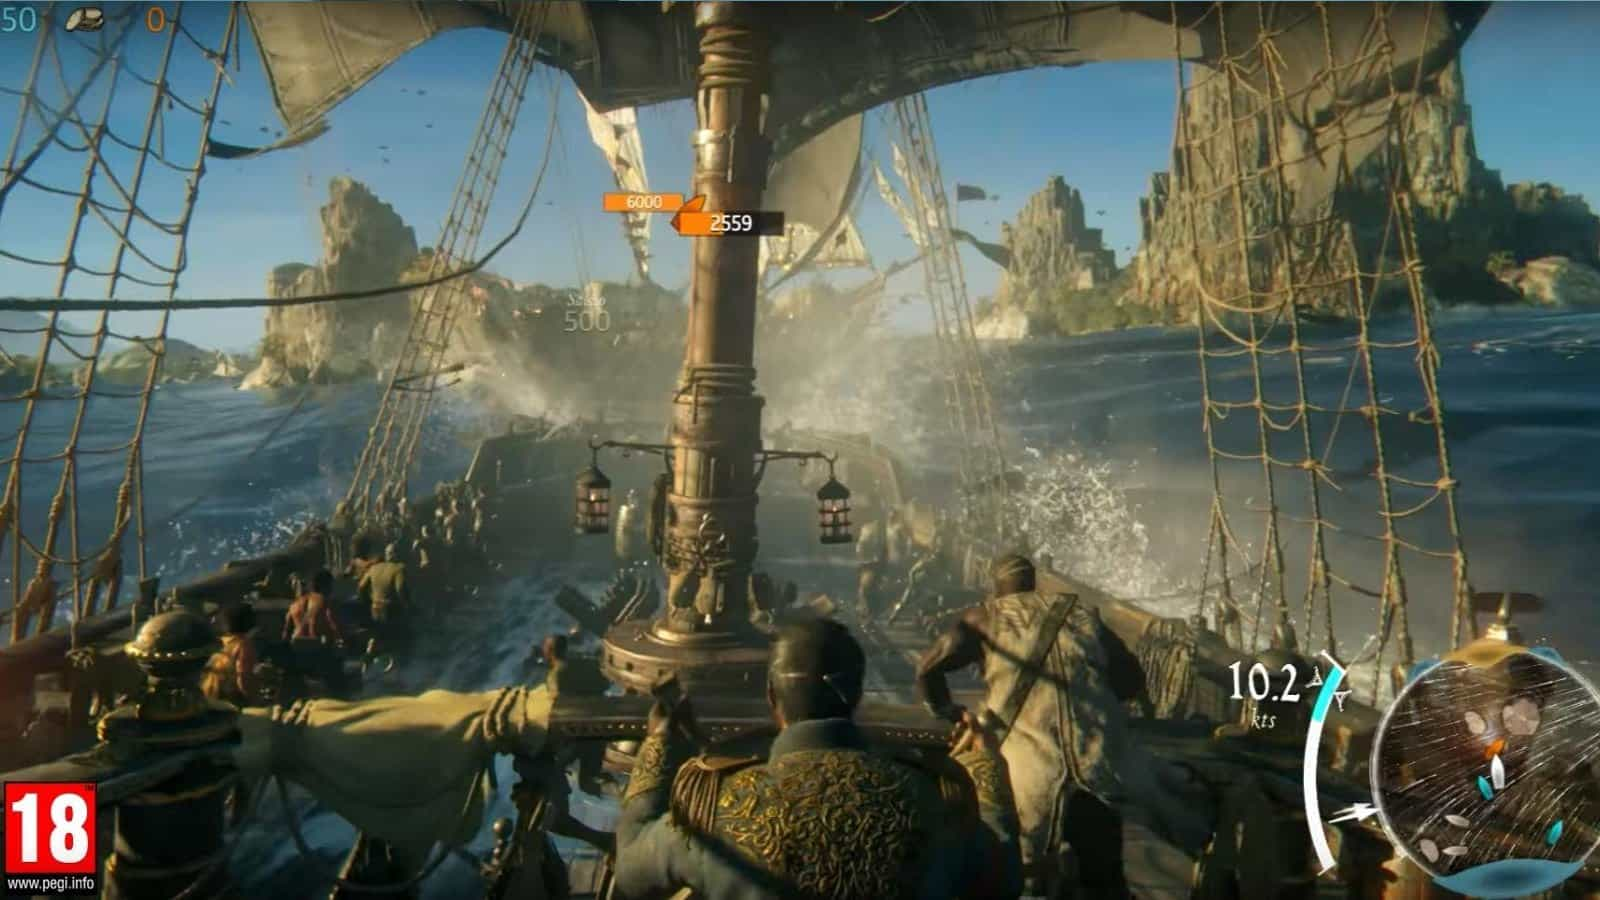 Skull And Bones Video Game 2018 Ubisoft: The Pirate's Life Certainly Looks Gorgeous In Ubisoft's